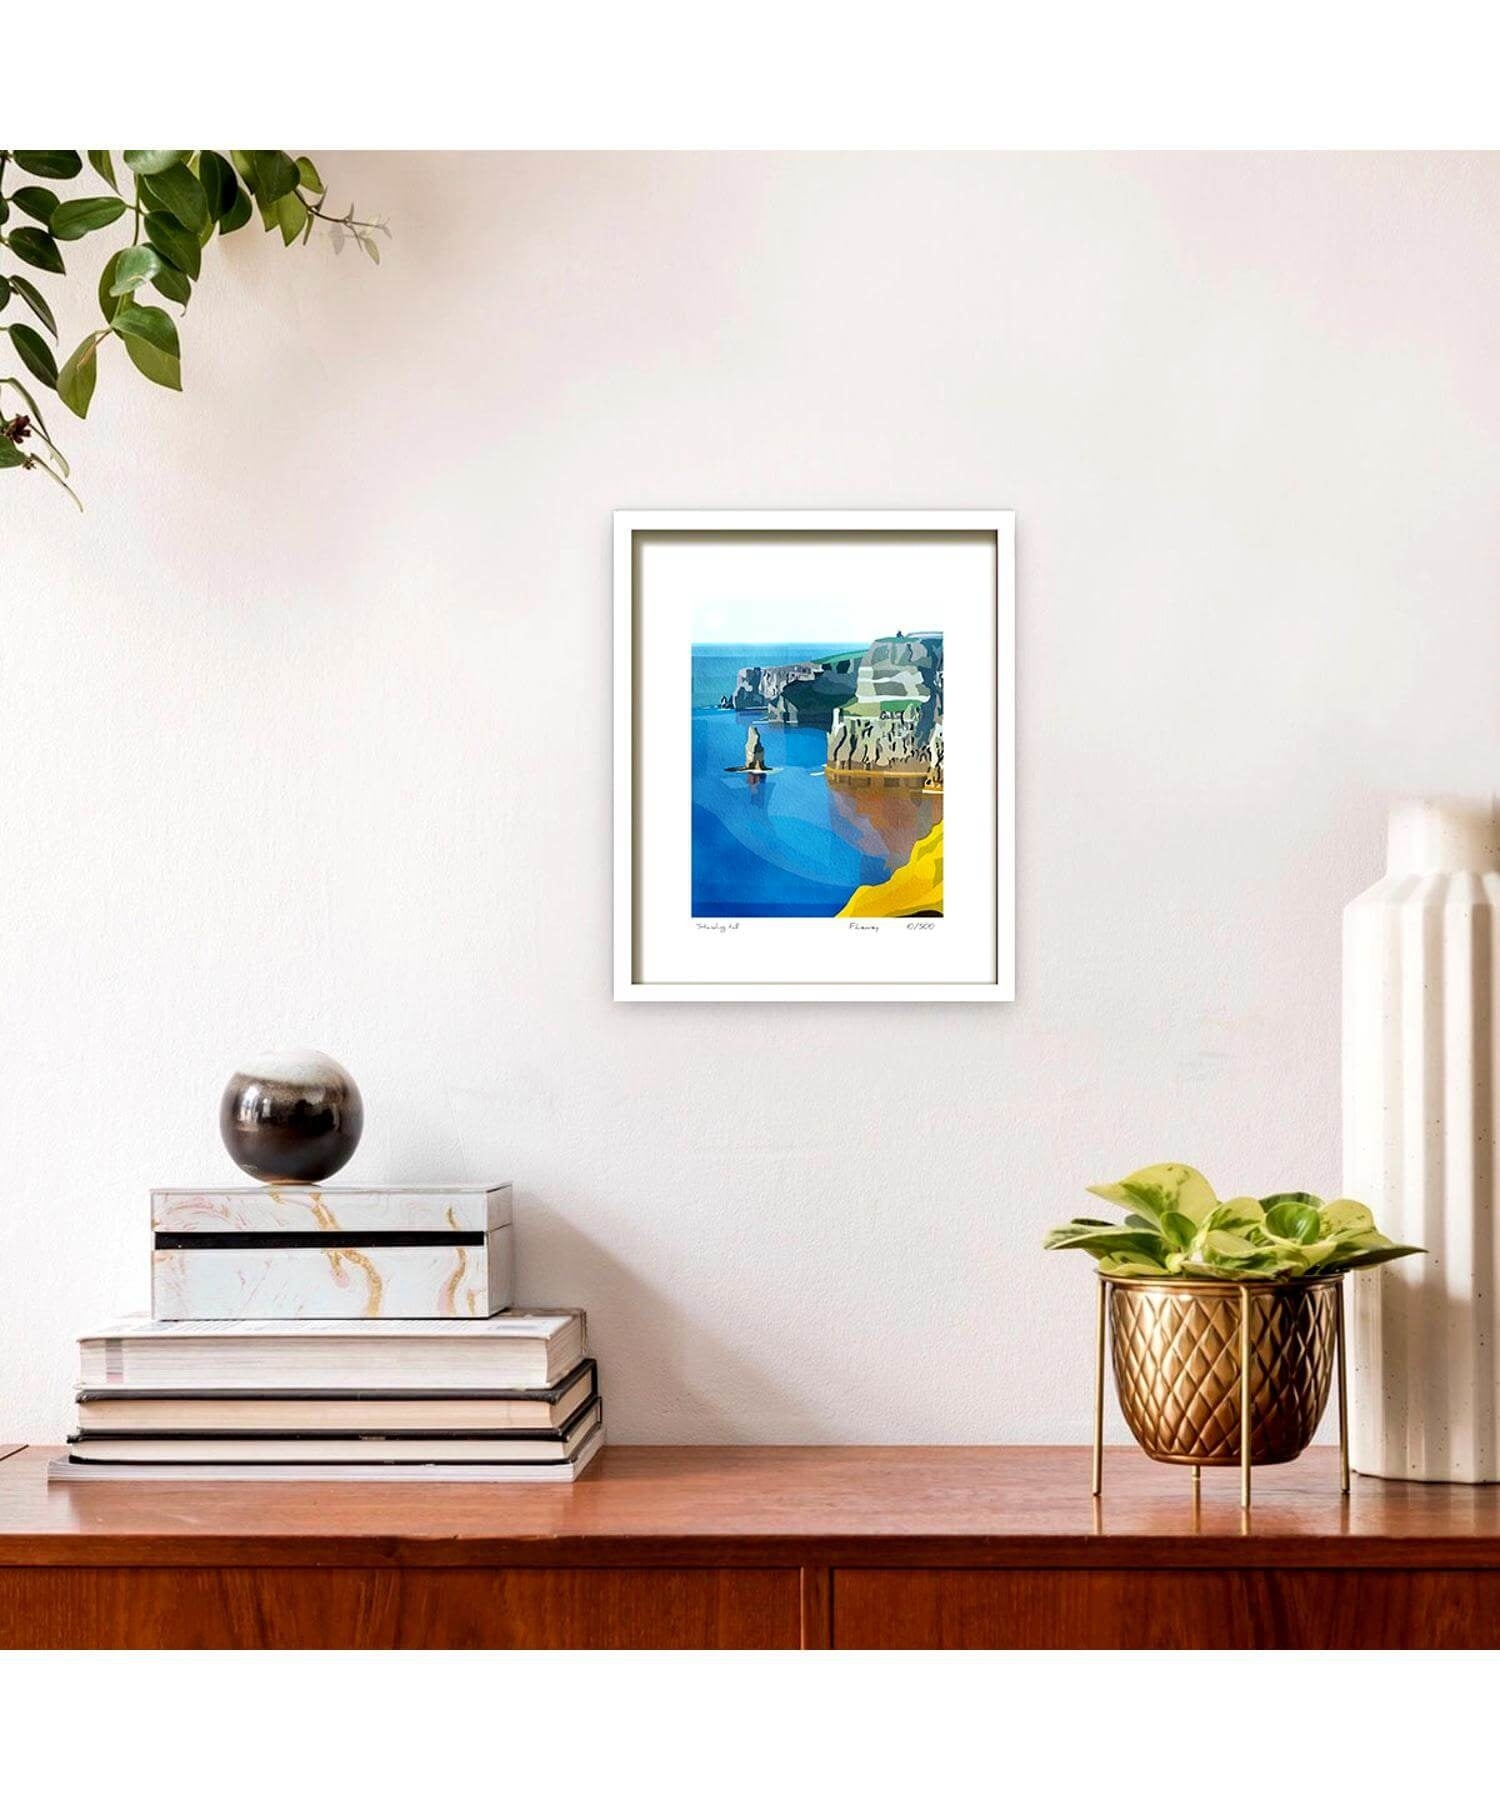 Mounted Print - Standing Tall Fab Cow Wall Art & Photography